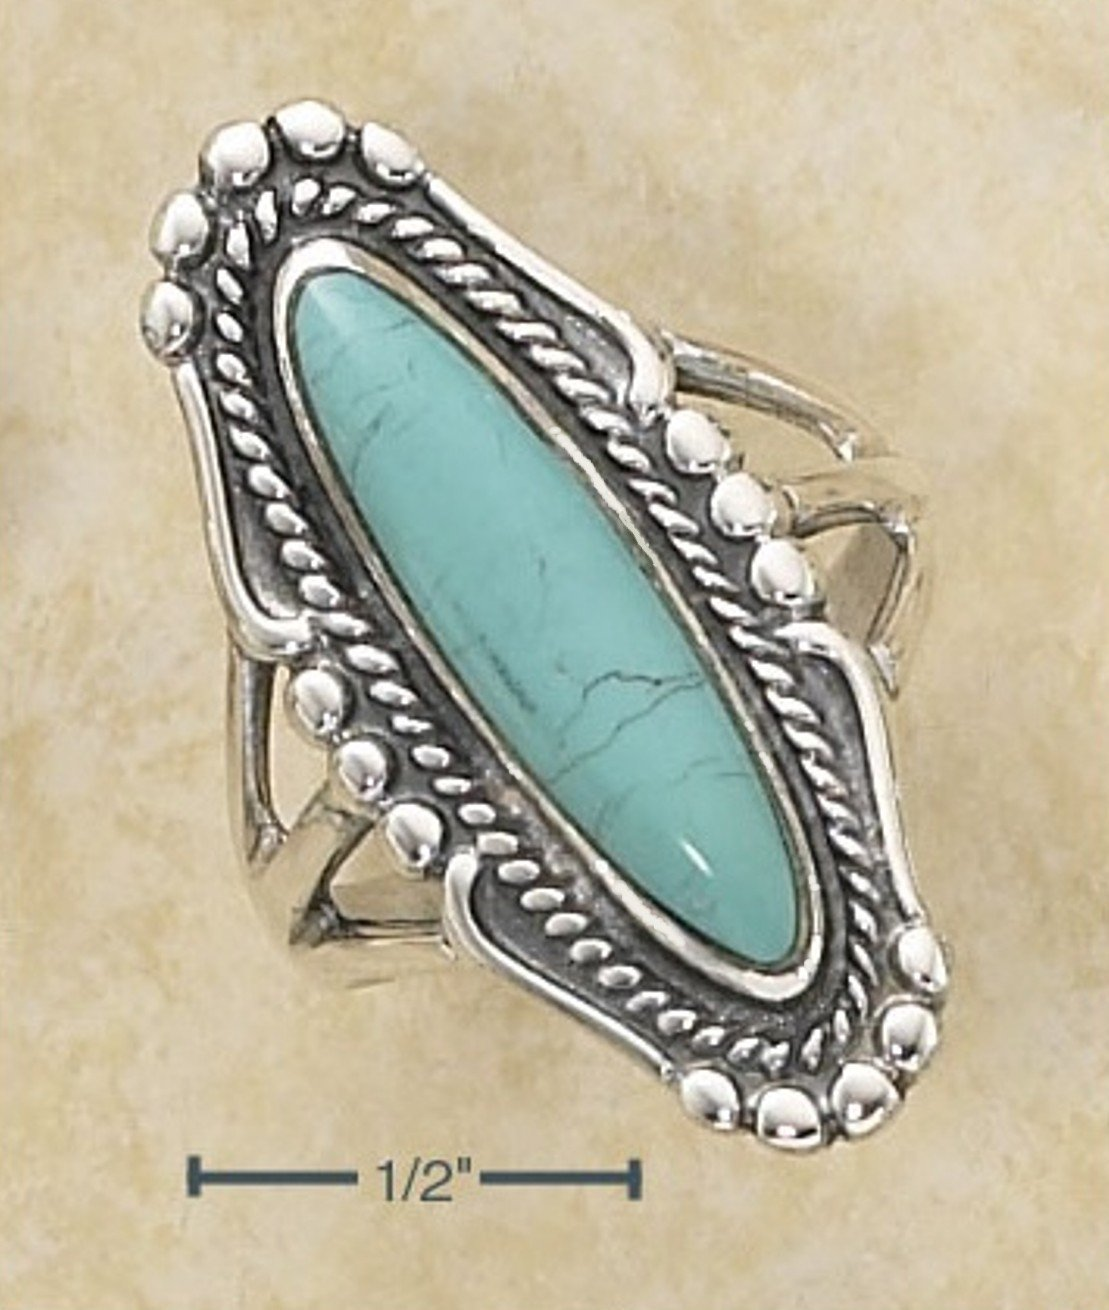 Sterling Silver ring with a large oval Turquoise stone size 6